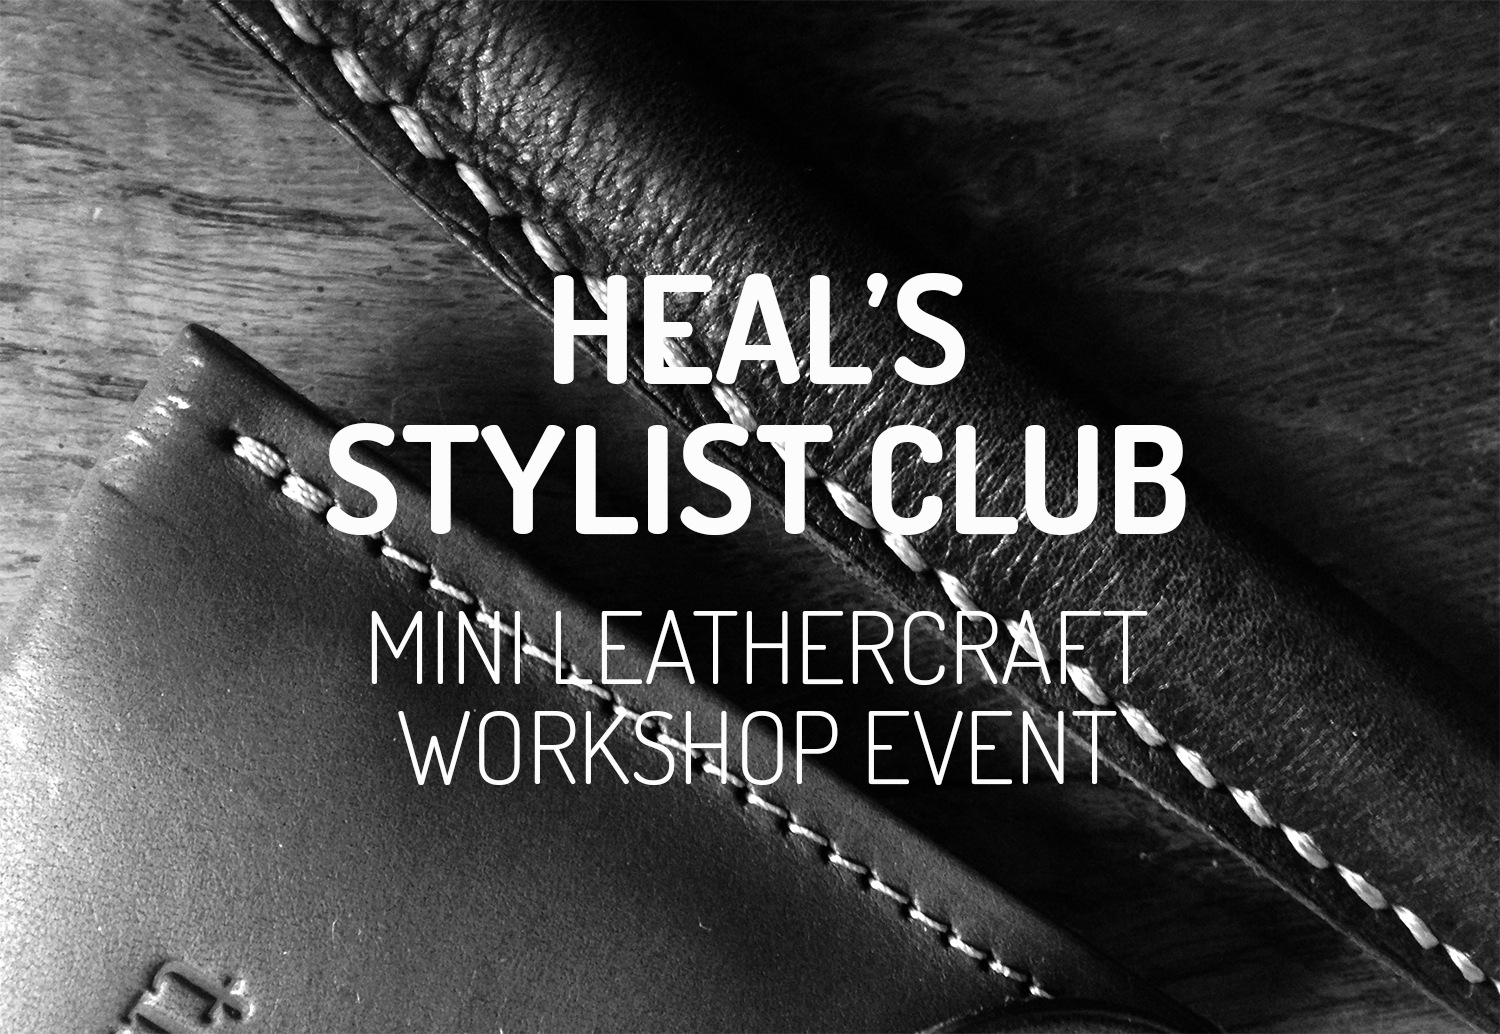 Heals Stylist event 2016